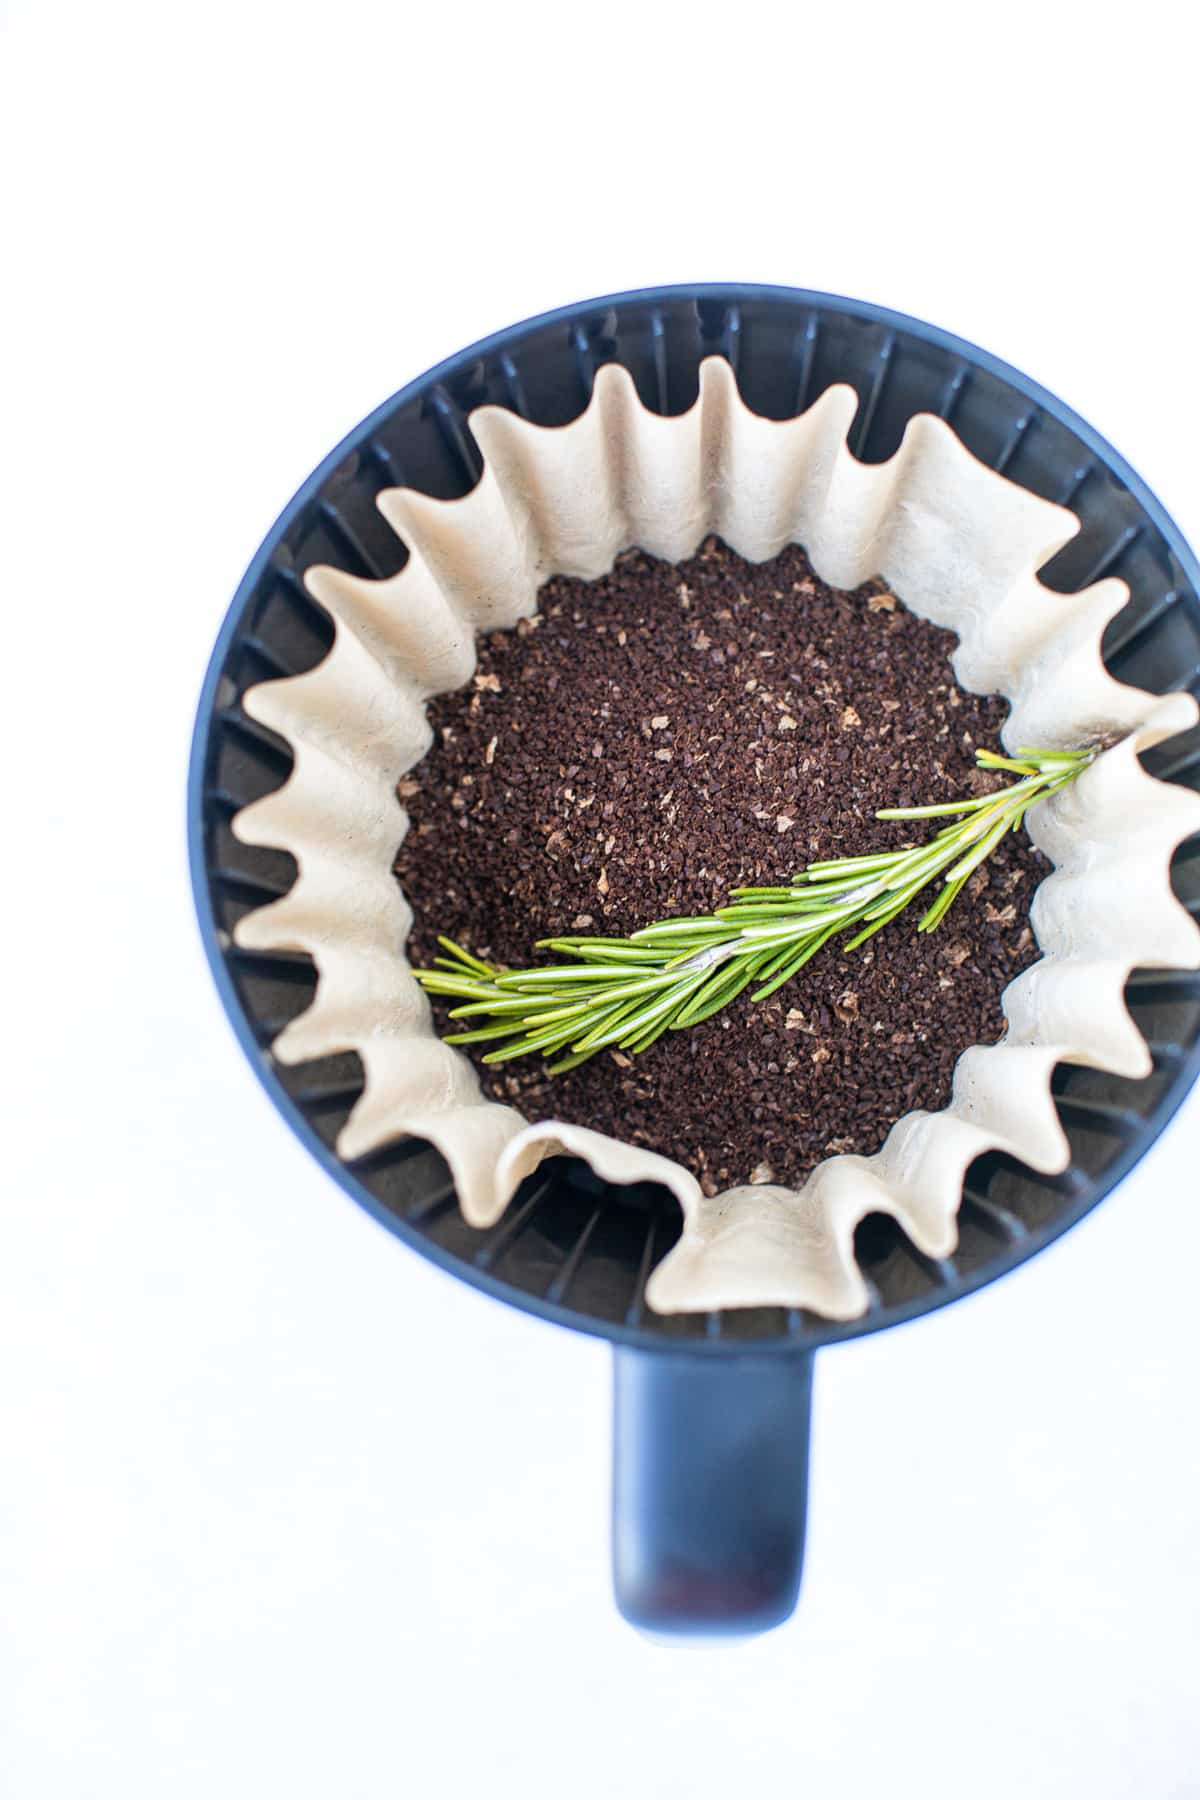 coffee filter with a sprig of fresh rosemary on top of coffee grounds